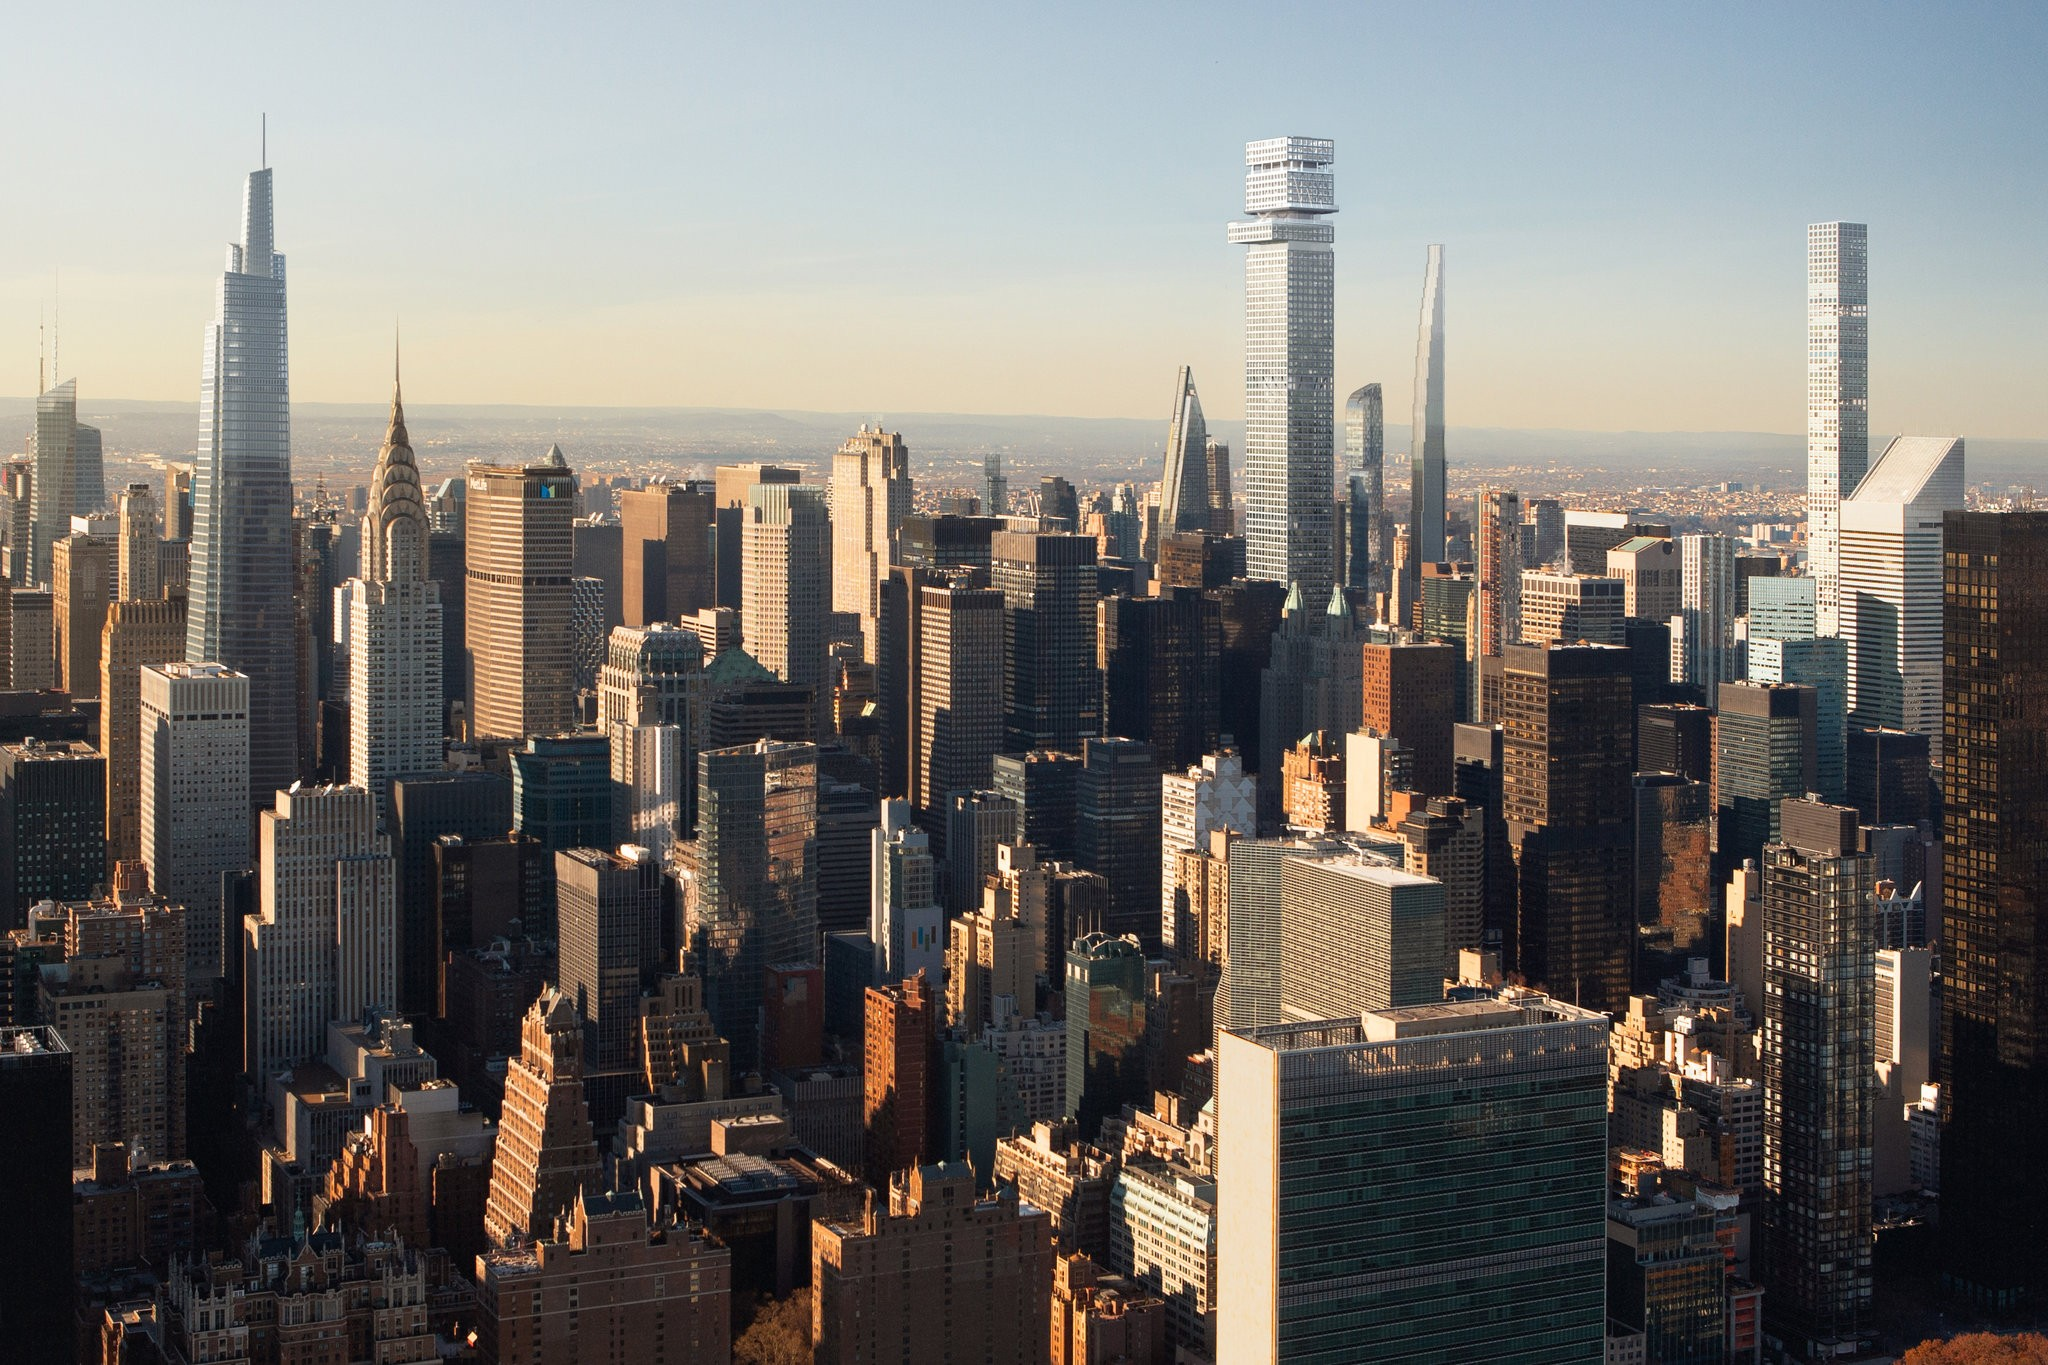 Rendering of the New York City skyline with Tower Fifth